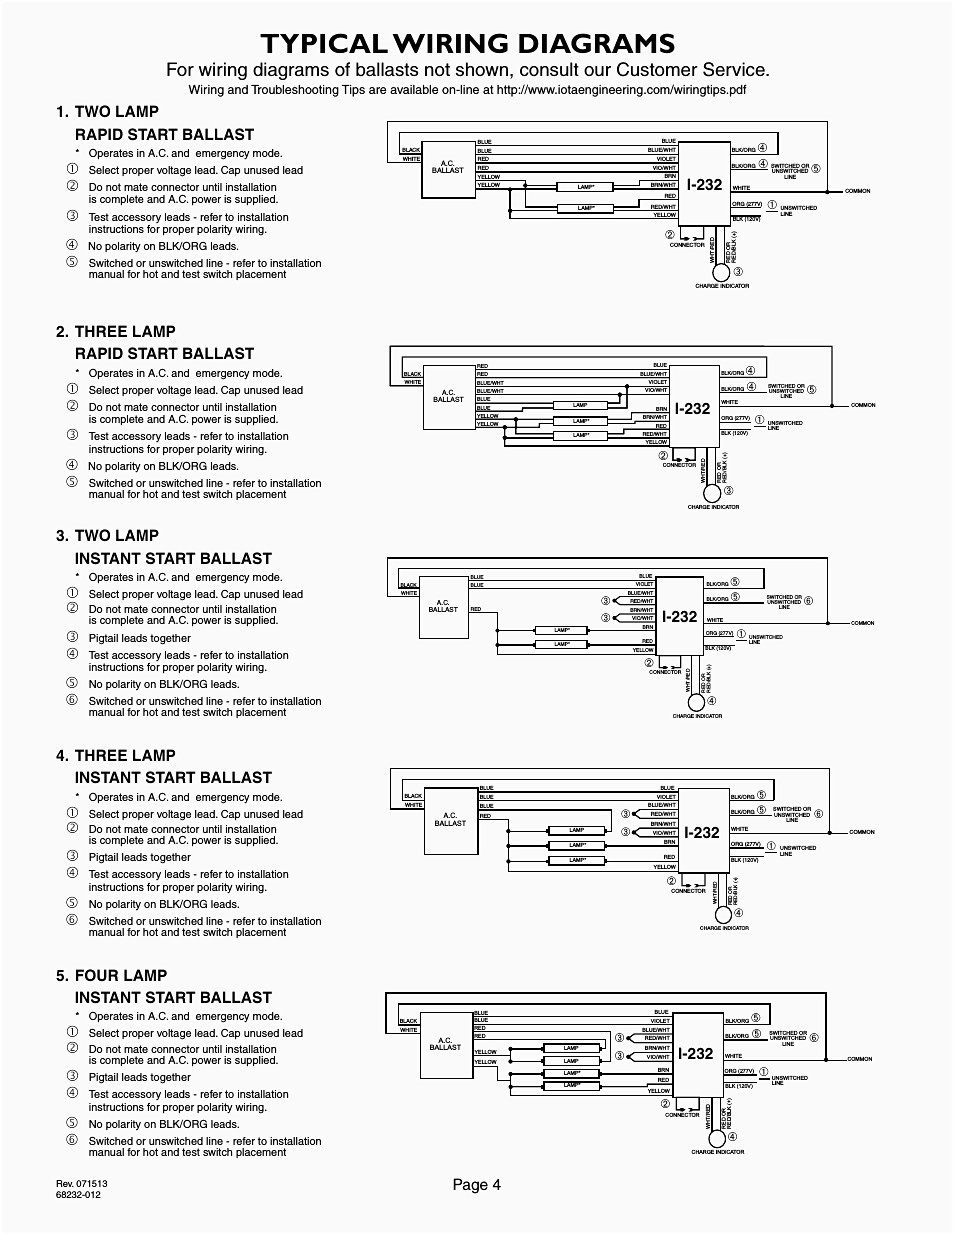 4 Lamp T8 Emergency Ballast Wiring Diagram - Wiring Diagrams Rapid Start Ballast Wiring Diagram on